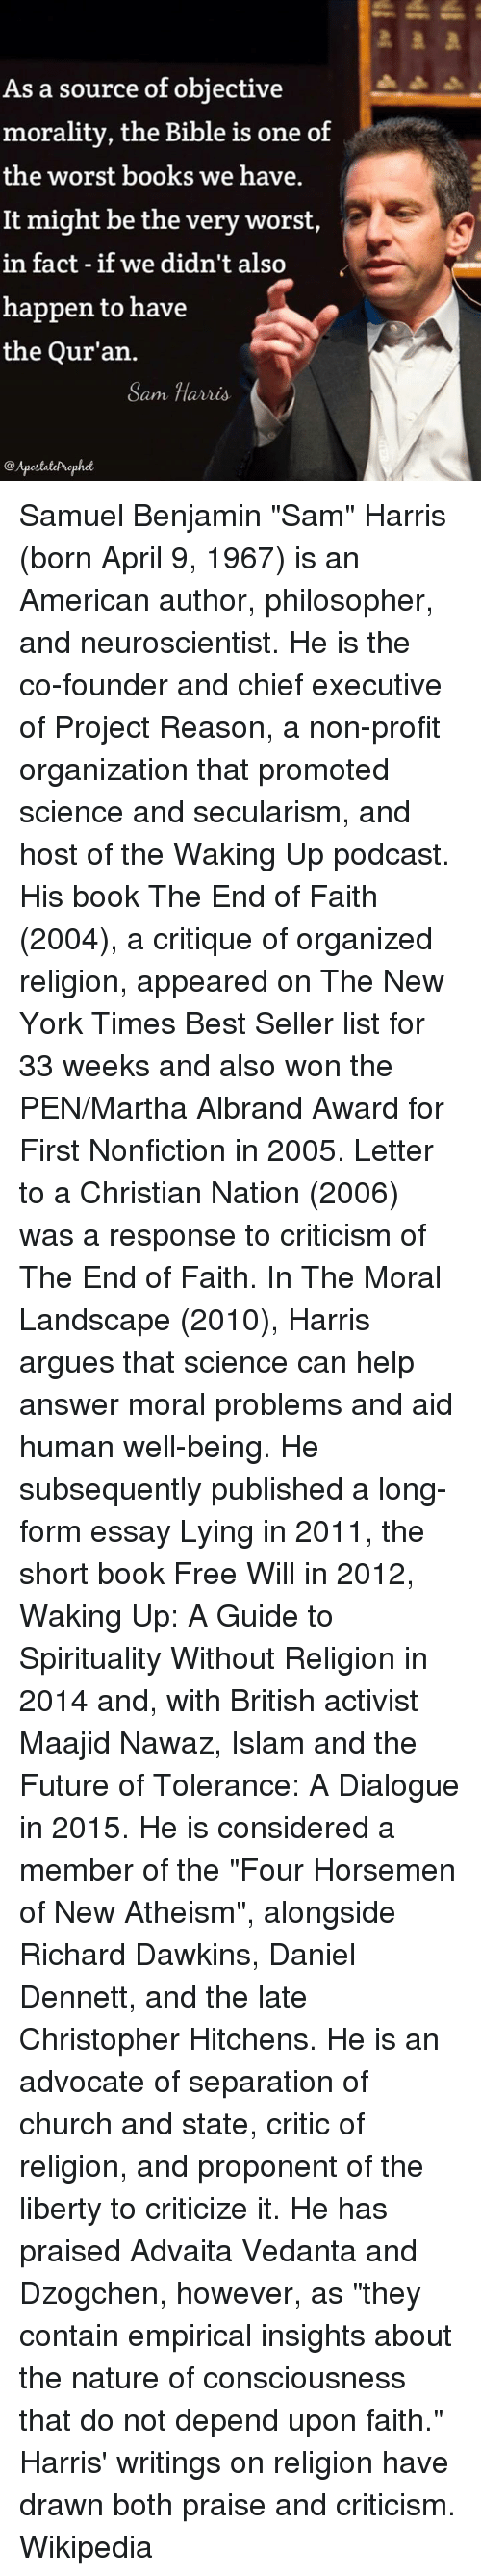 of morality and spirituality 3 essay The spirituality of an individual informs the position that they take concerning politics (rogowski & sutherland, 2015) morality and character define how one perceives a particular collection of ideas, and this affects the view of policies.